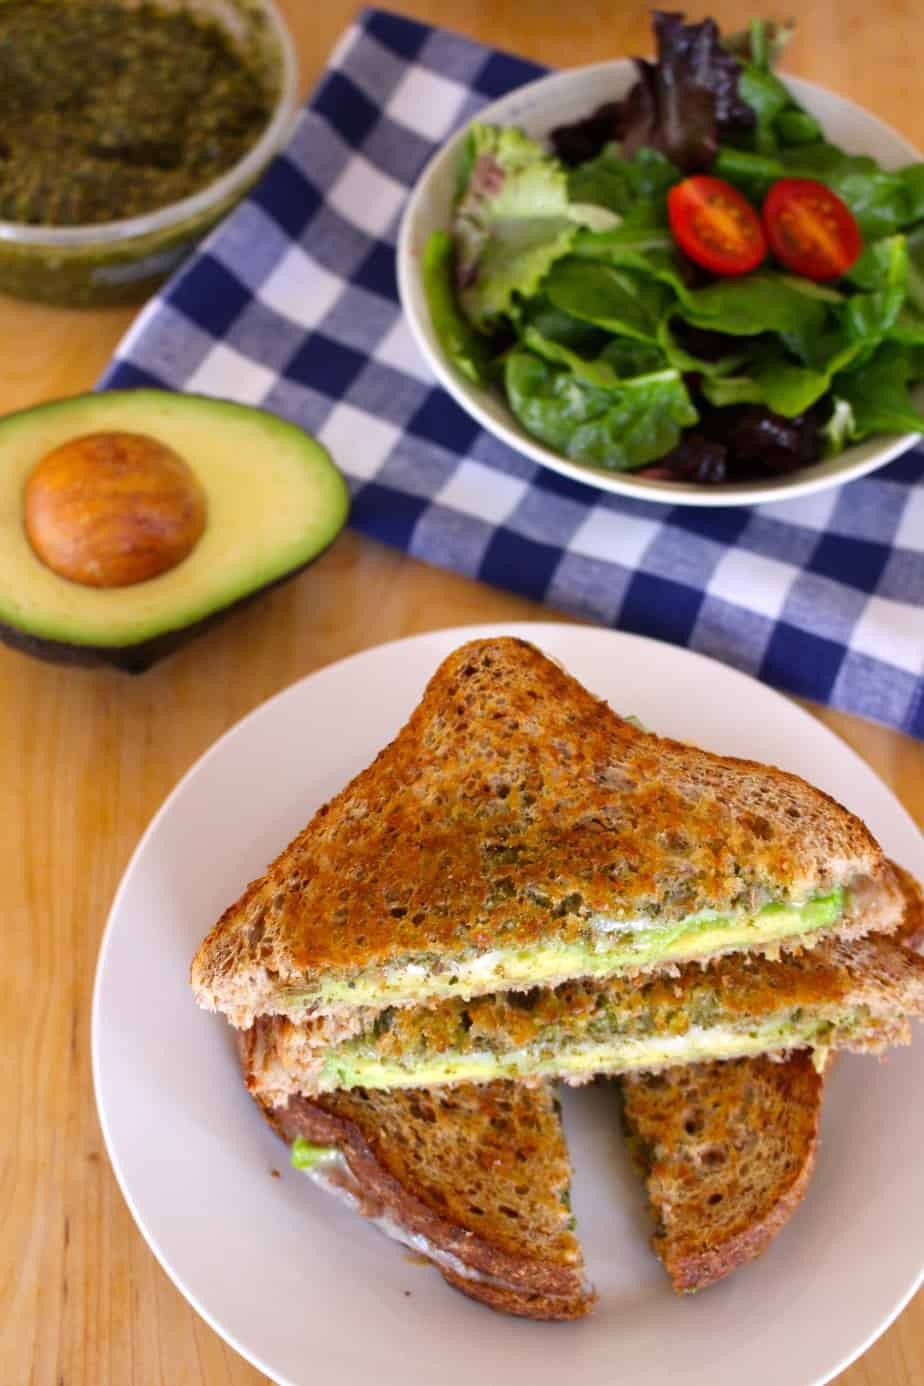 Pesto, Provolone, & Avocado Grilled Cheese | Frugal Nutrition